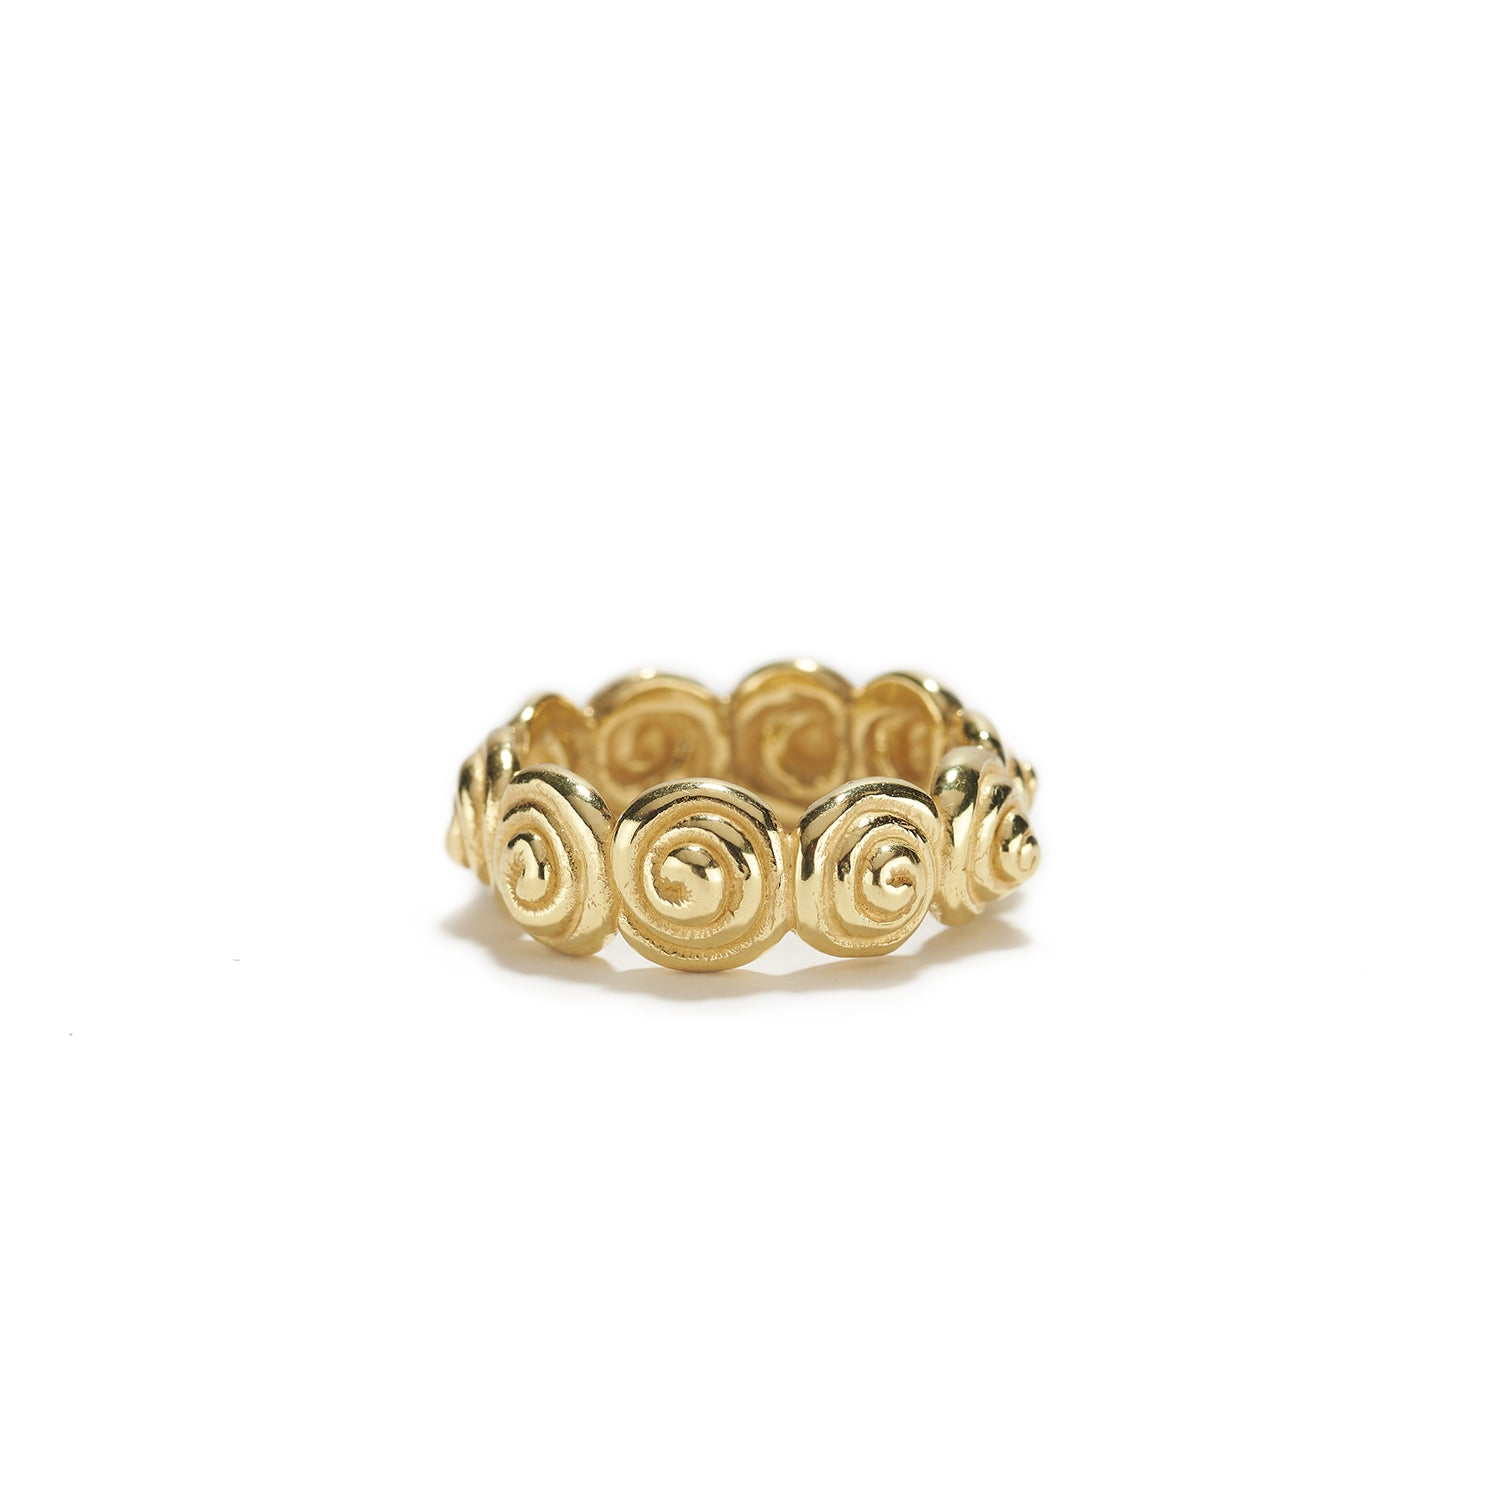 Snail Ring in Gold